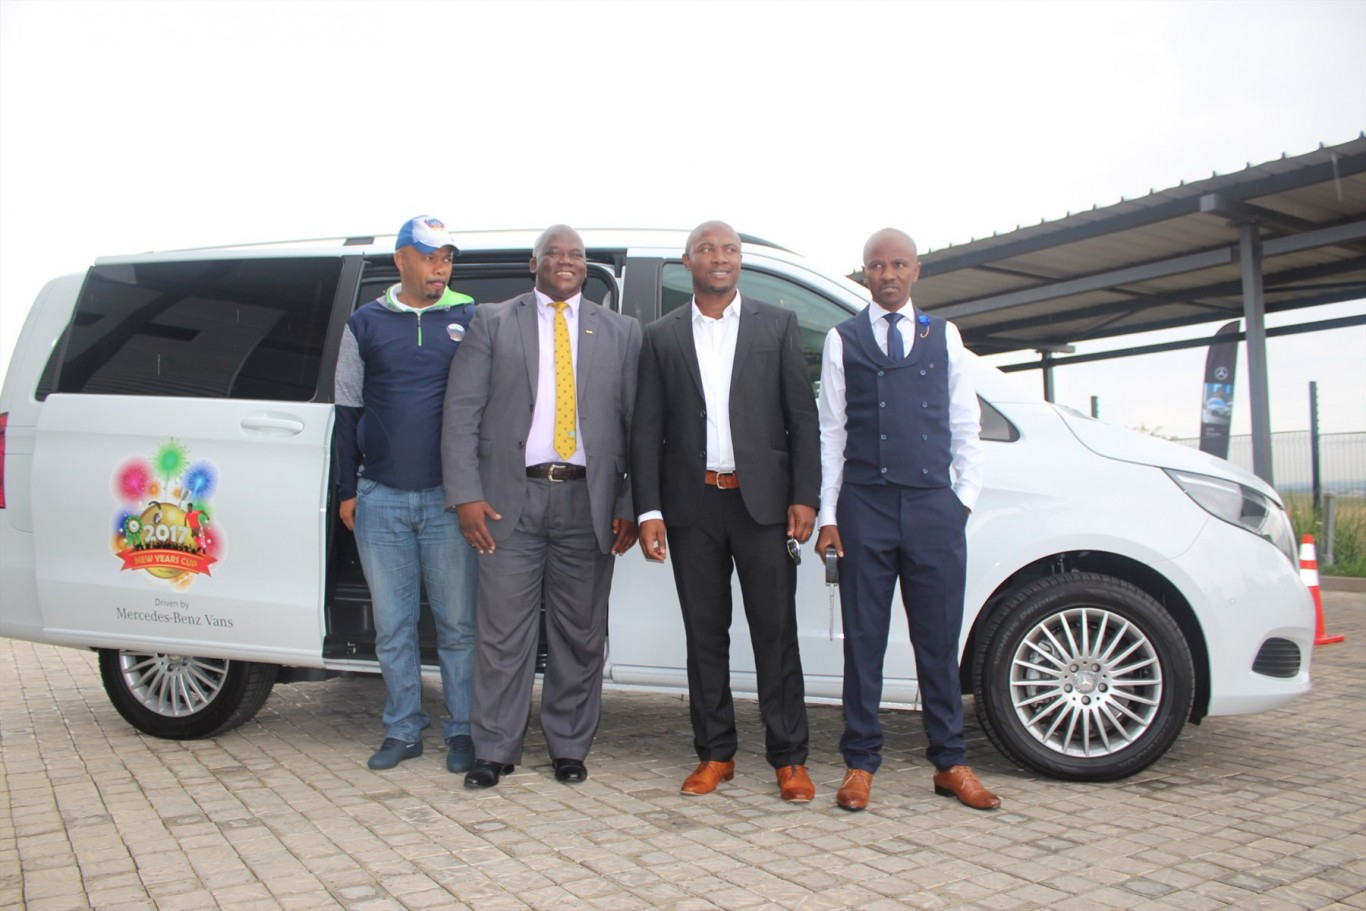 Mercedes-Benz Vans sponsors the Eastern Cape's 2017 New Year's Cup football tournament with six vehicles